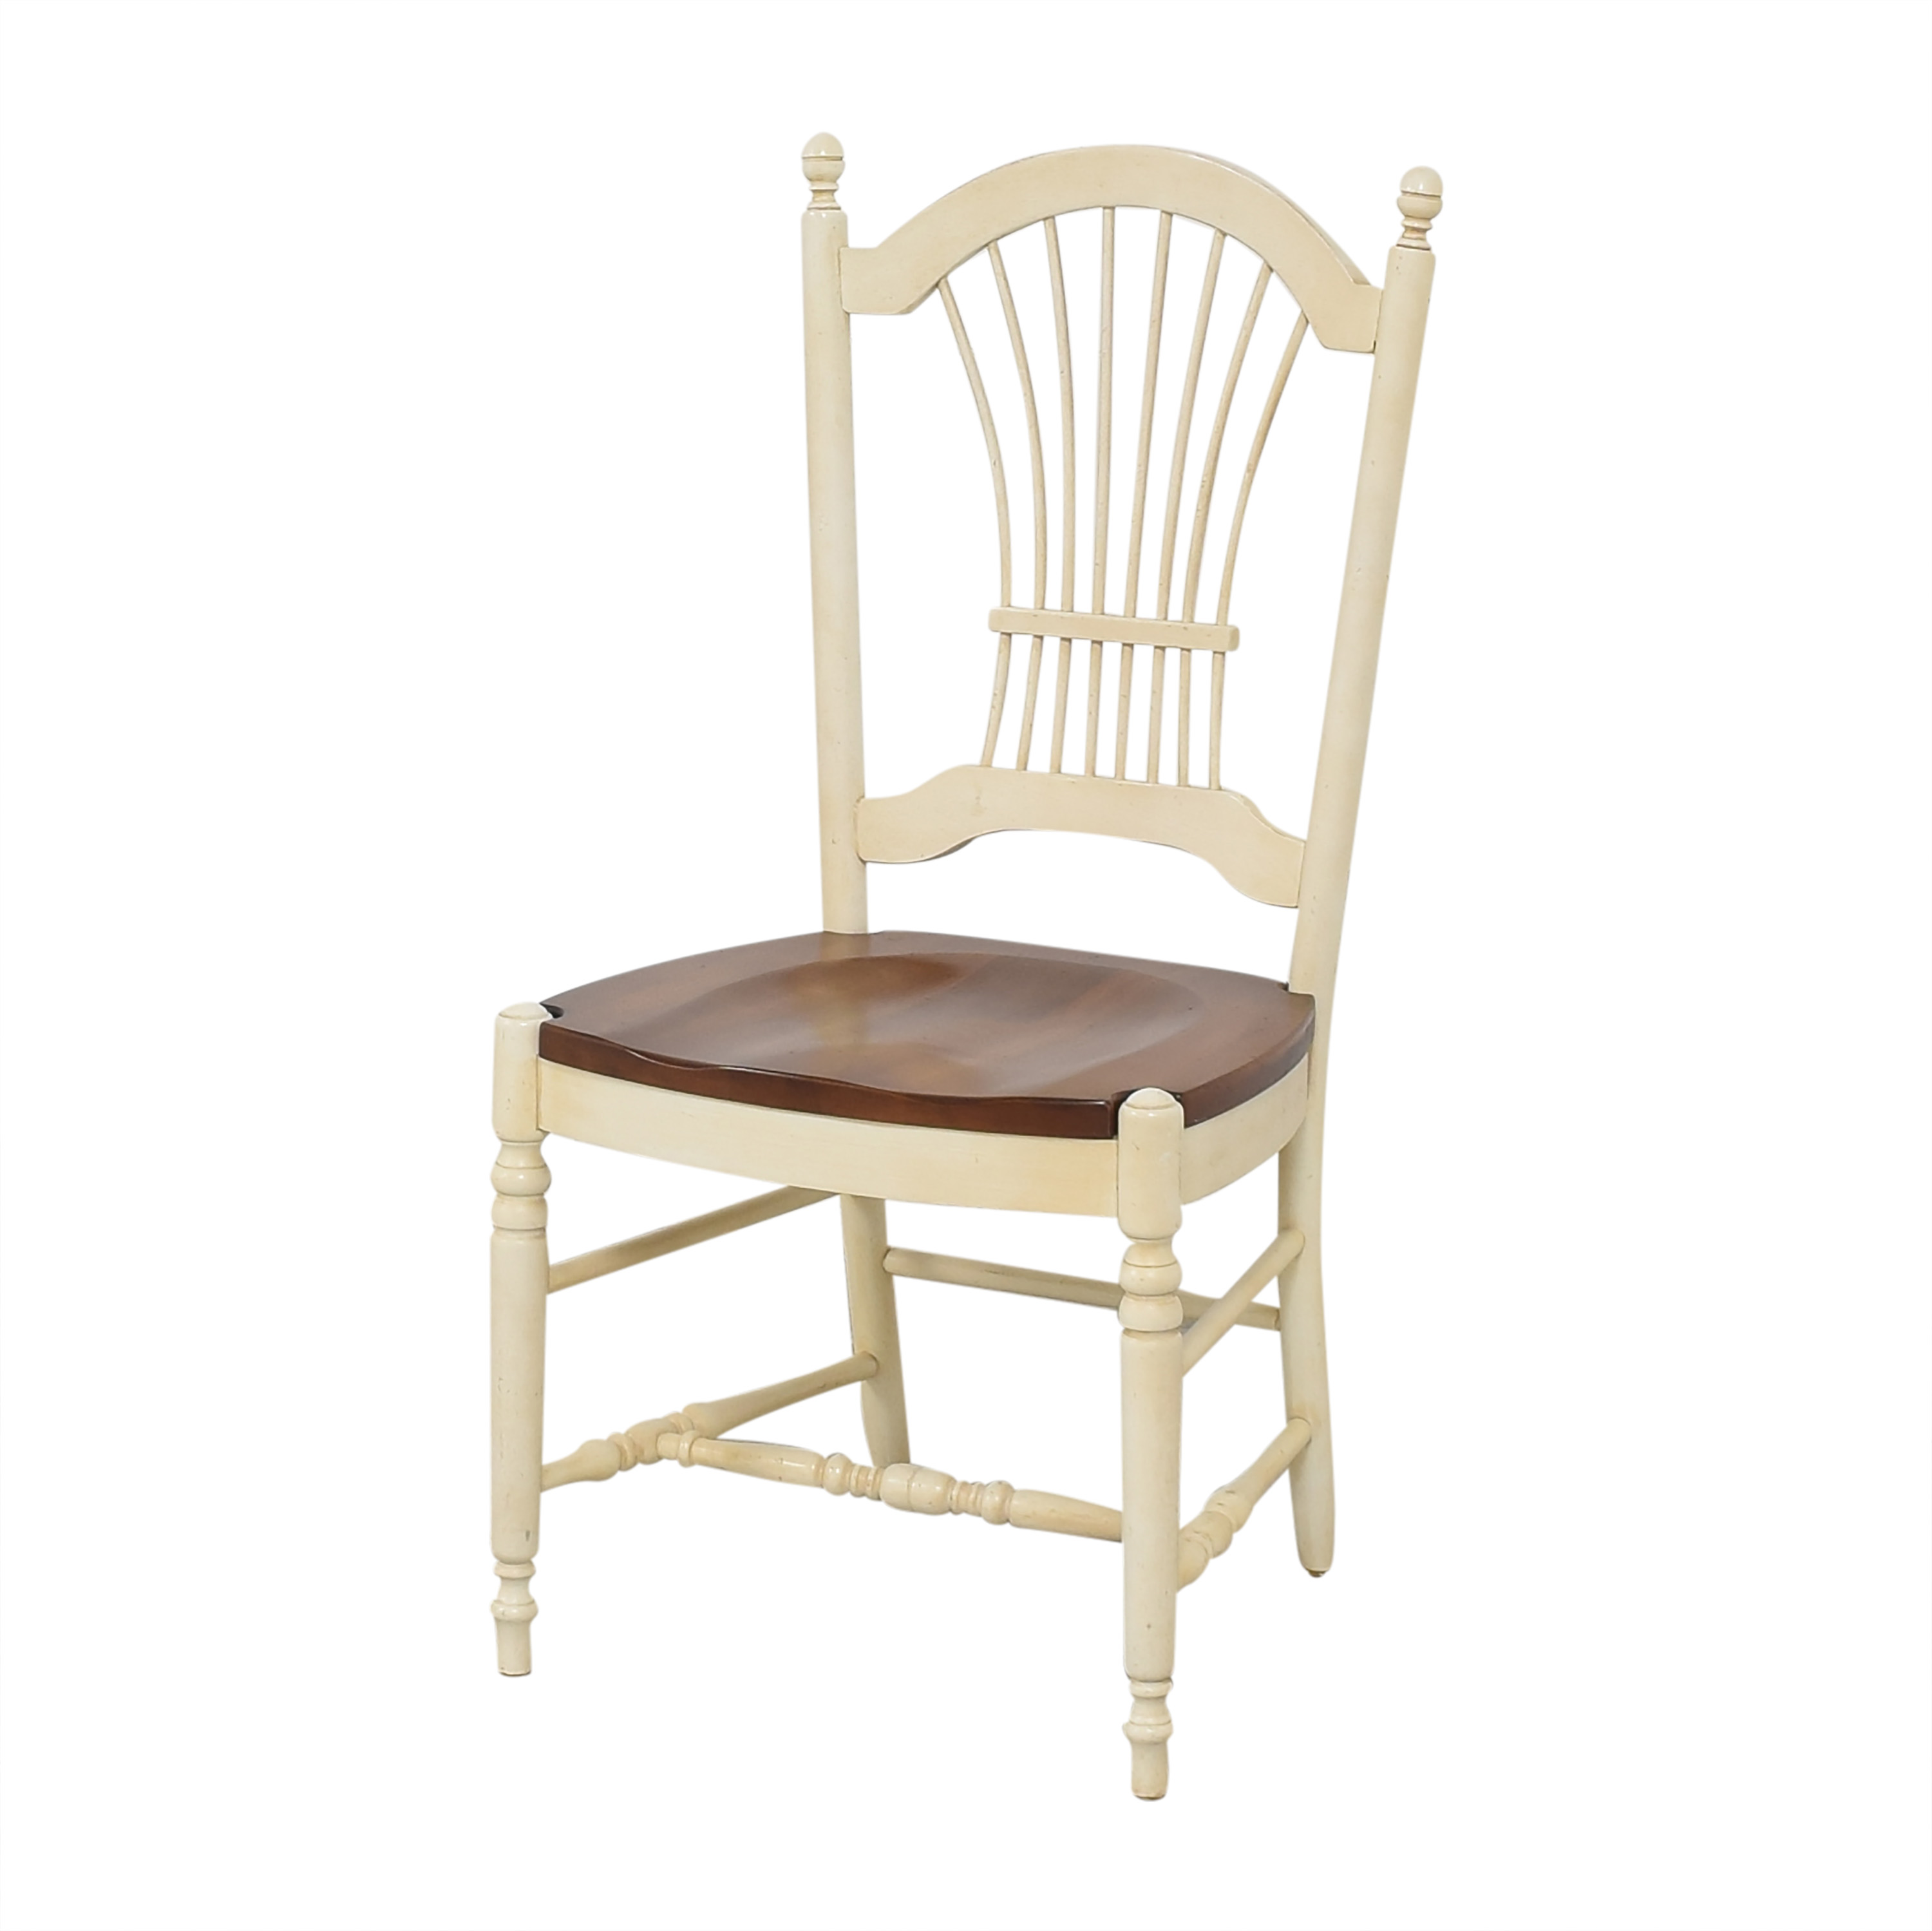 Ethan Allen Ethan Allen Country French Dining Chairs nj